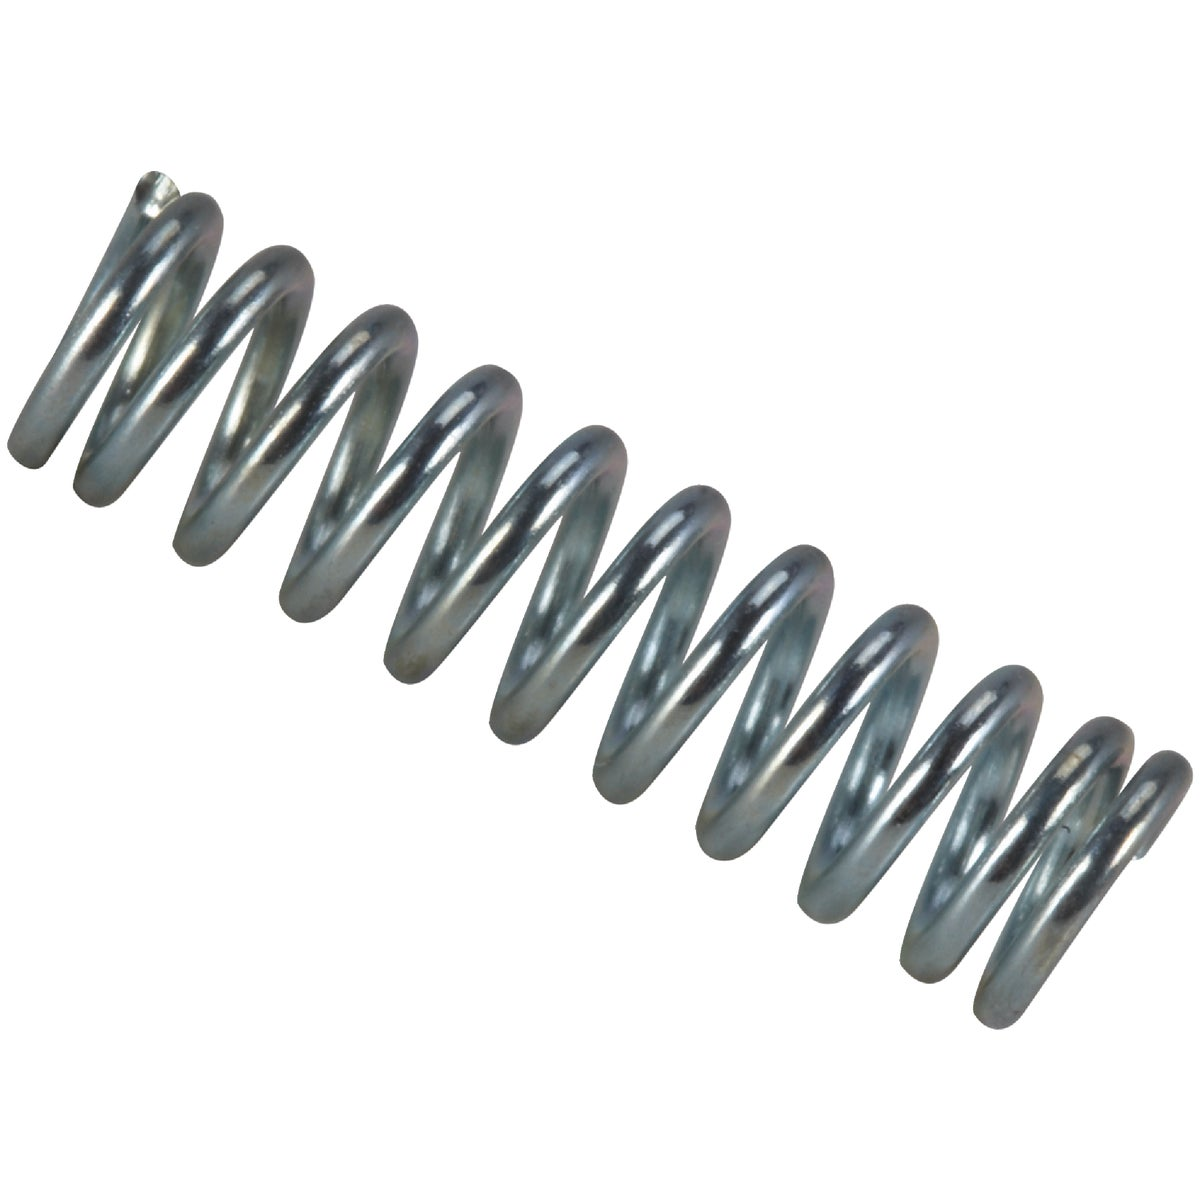 COMPRESSION SPRING - C-530 by Century Spring Corp